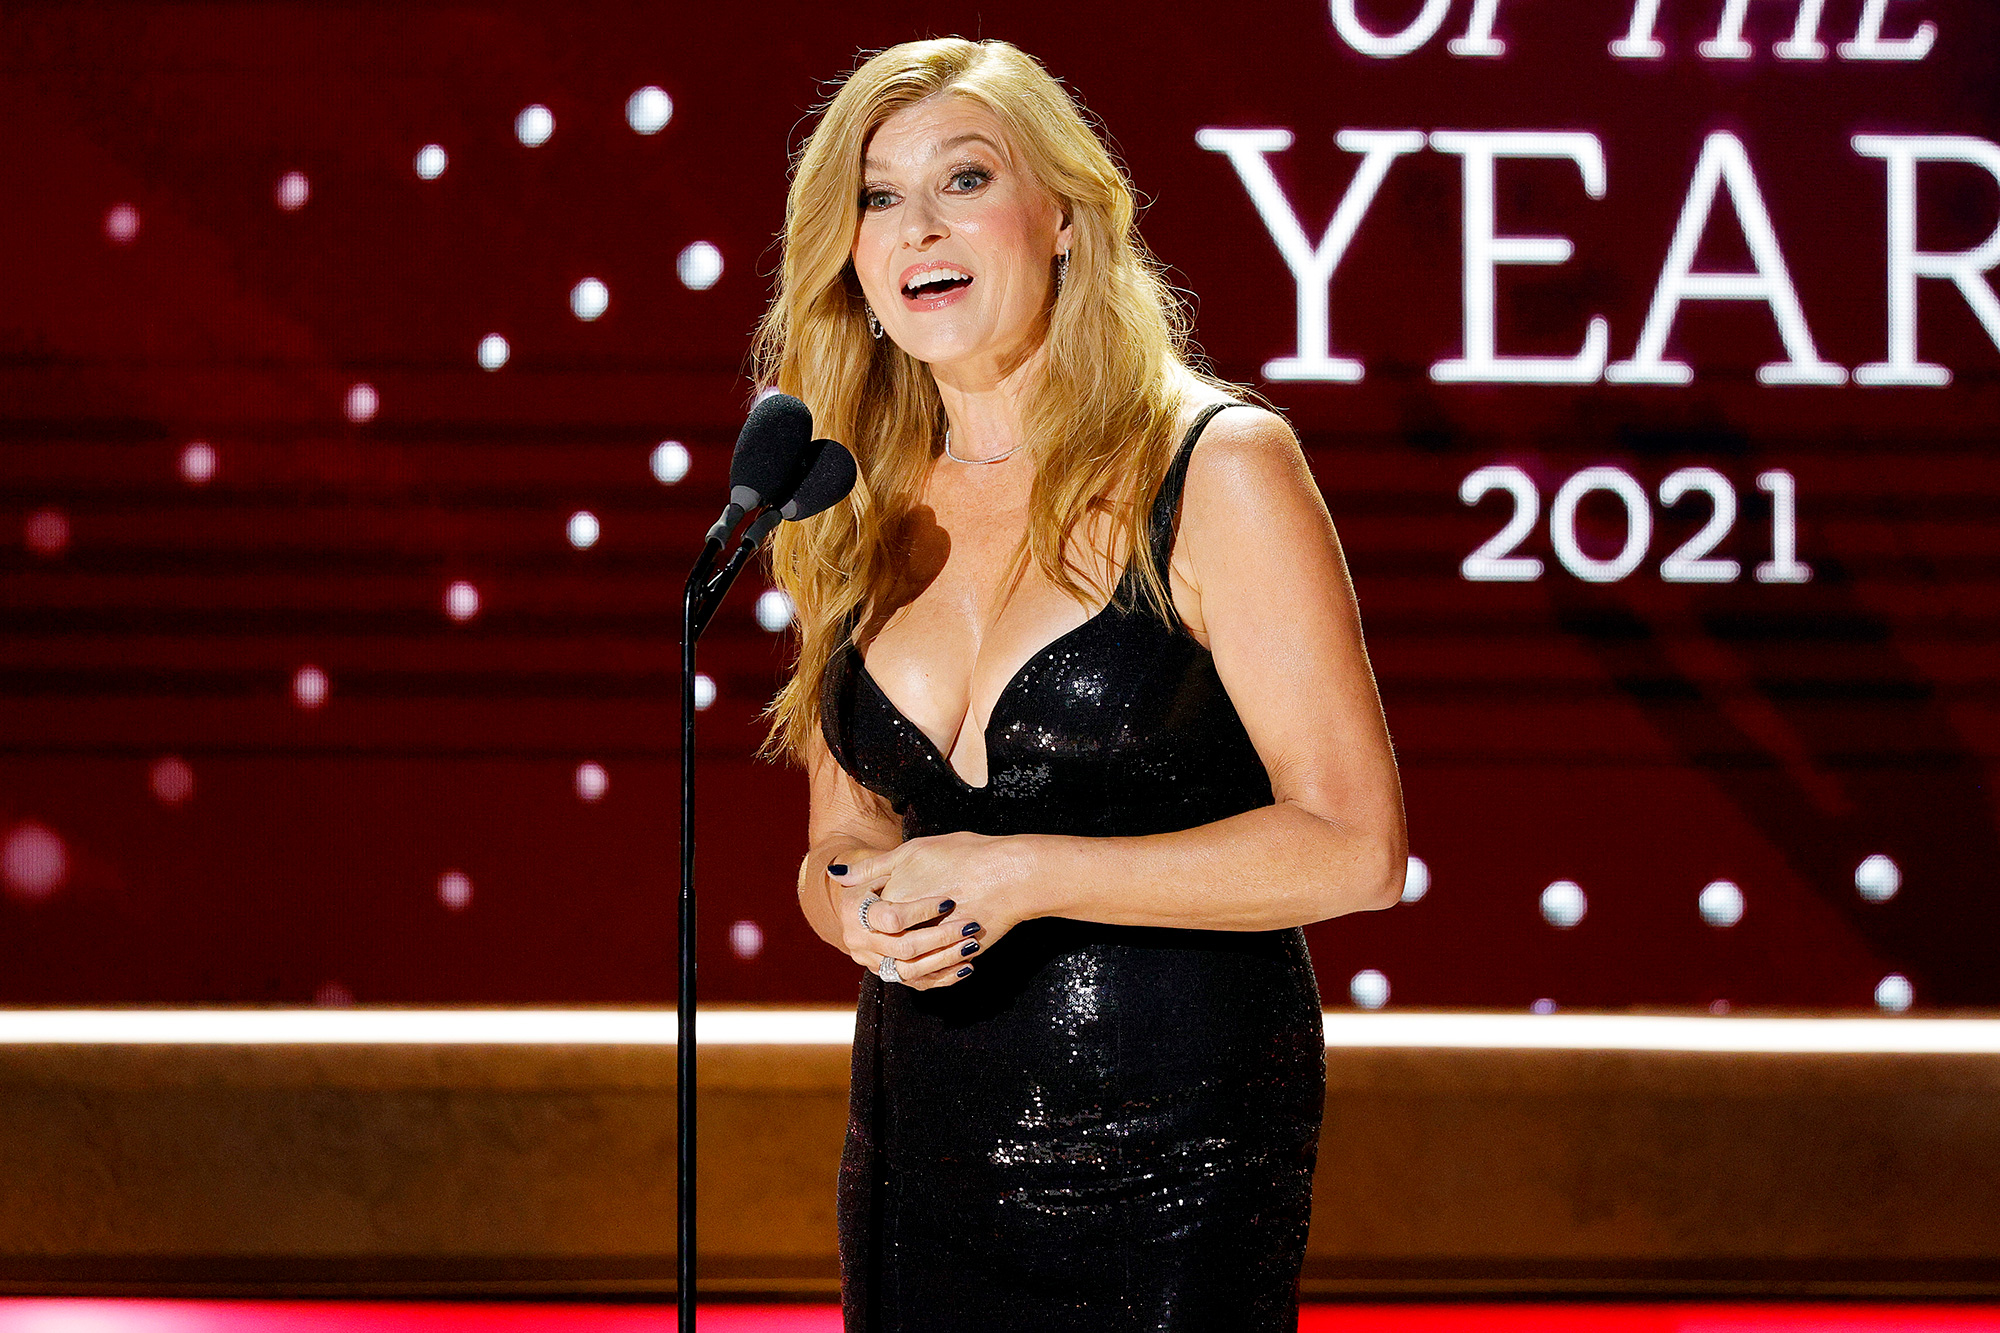 Connie Britton speaks onstage during the 2021 CMT Artist of the Year on October 13, 2021 in Nashville, Tennessee.